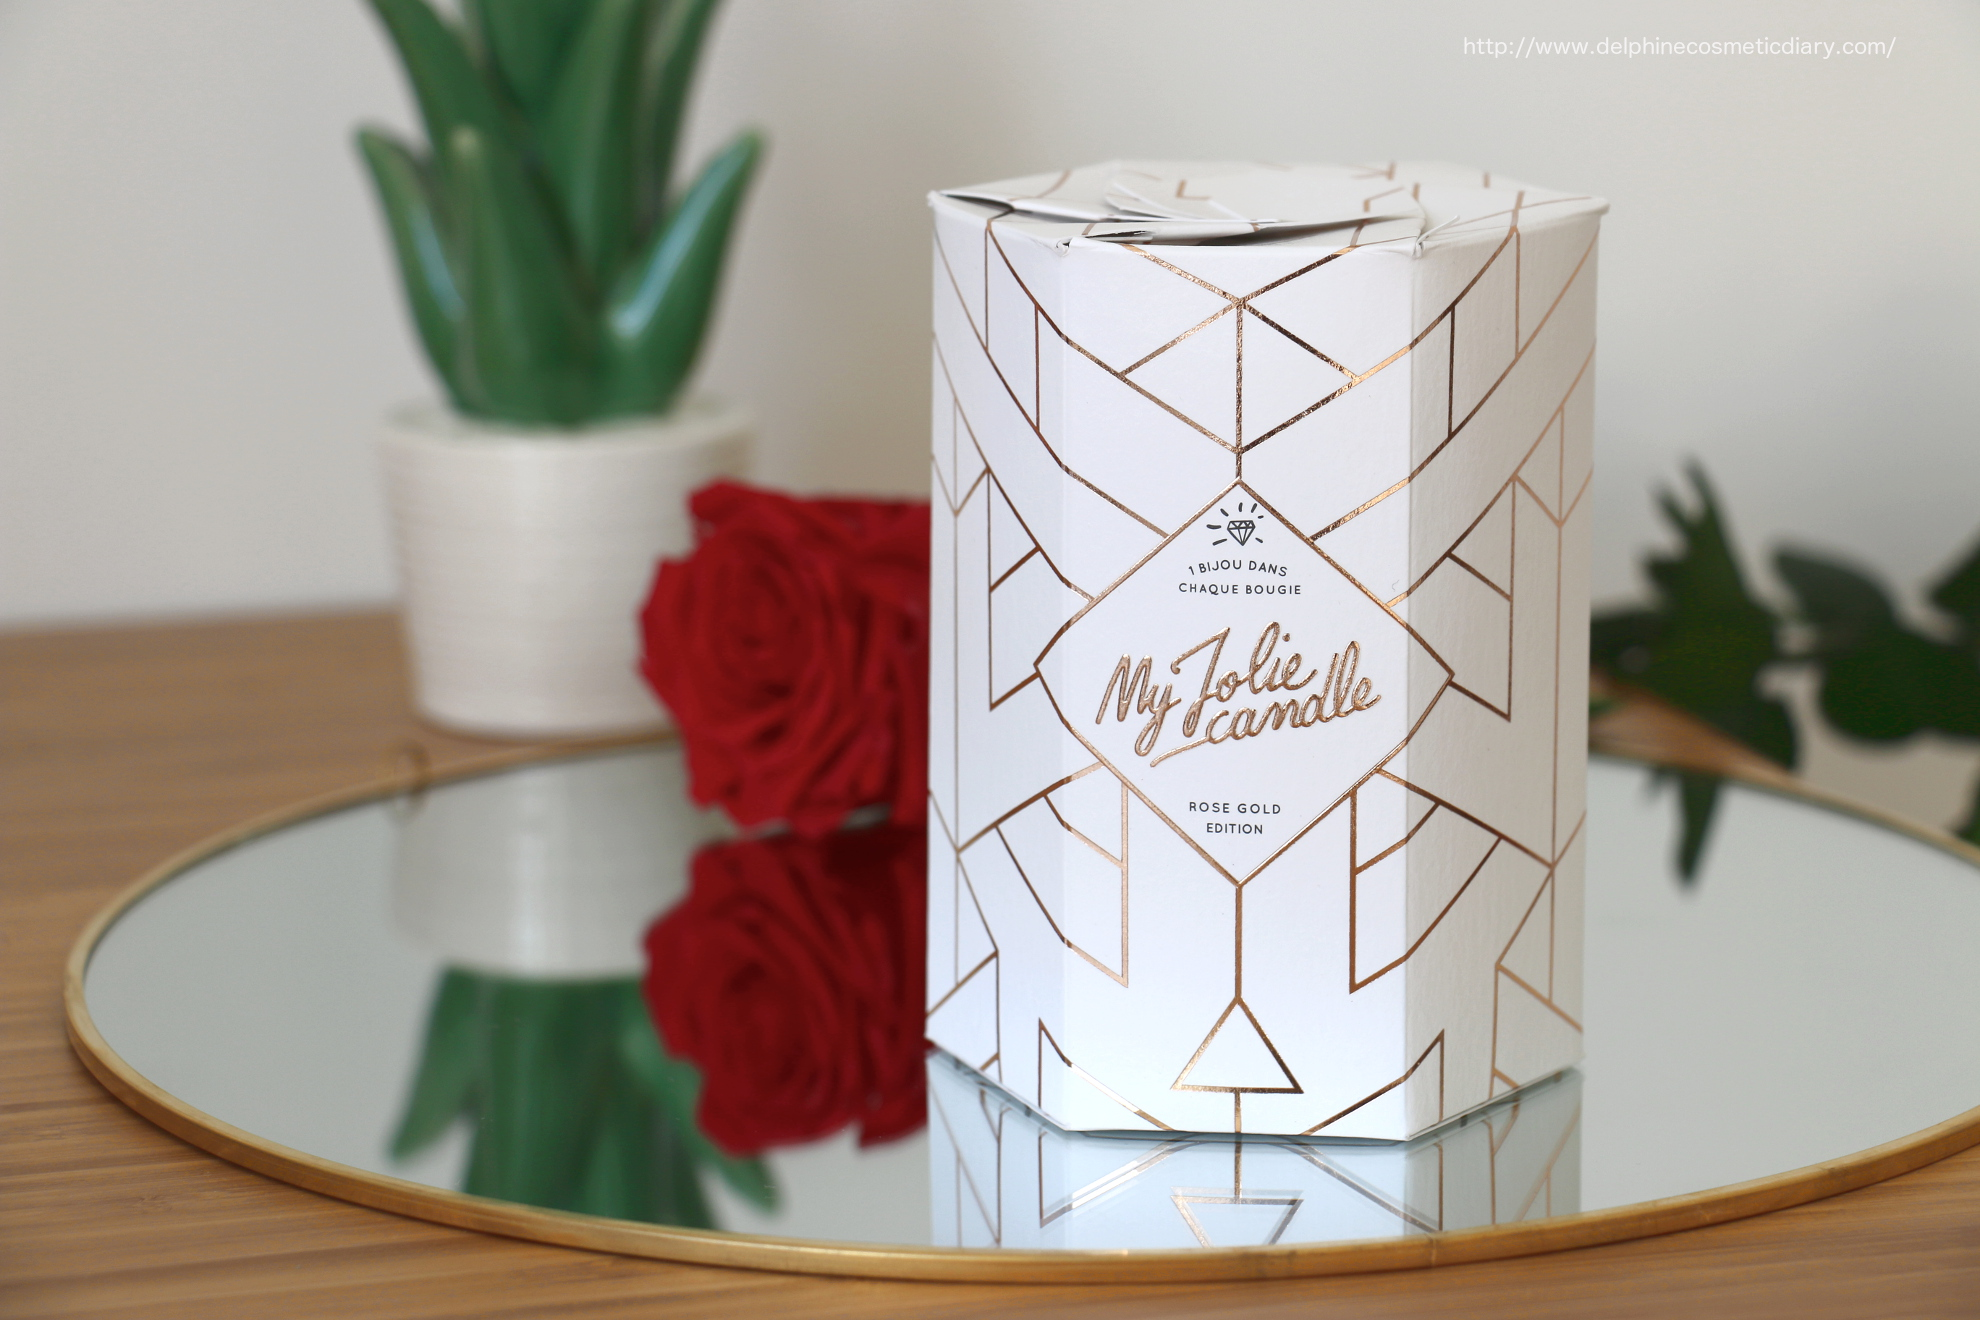 My Jolie Candle | Rose Gold Edition